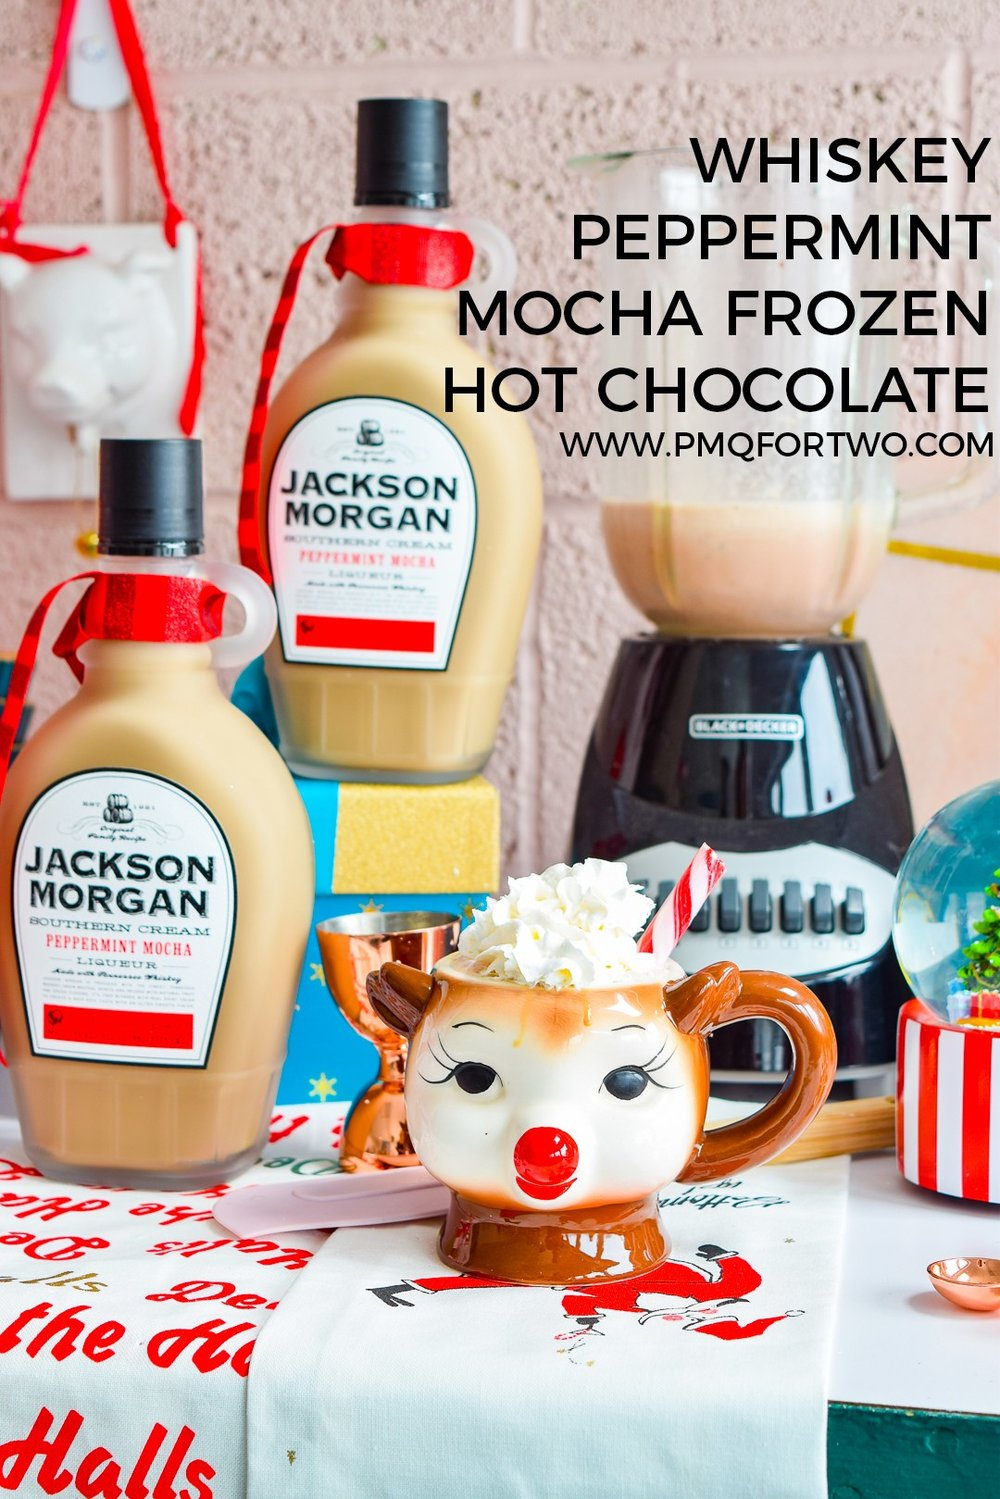 Whiskey-Peppermint-Mocha-Frozen-Hot-Chocolate-PIN.jpg